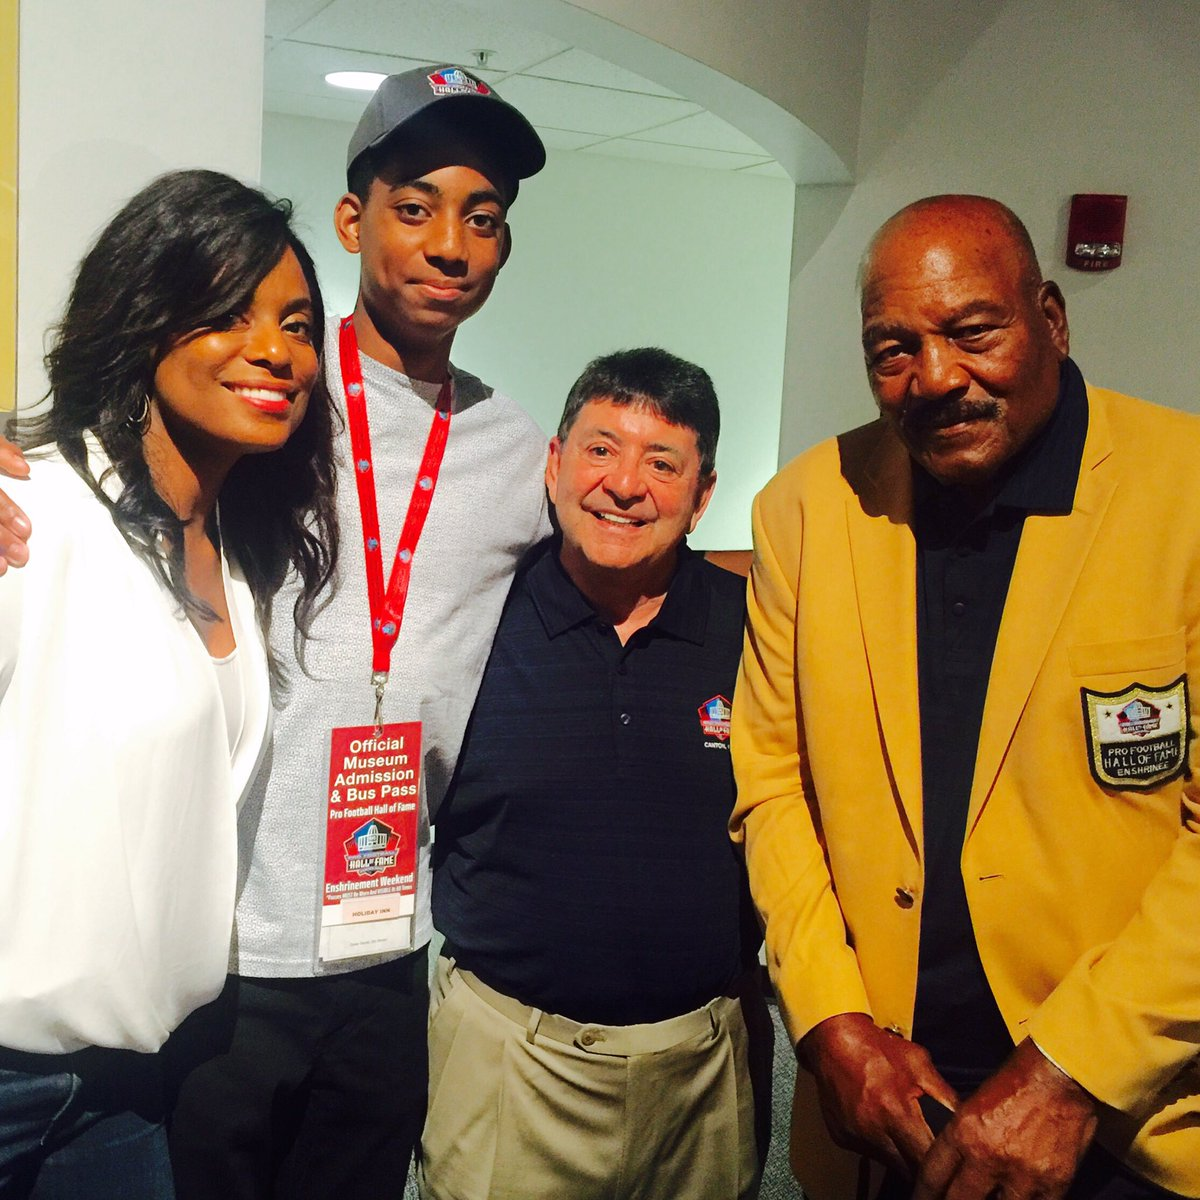 Jim Brown Family >> Jim Brown On Twitter Great Day With My Family At The